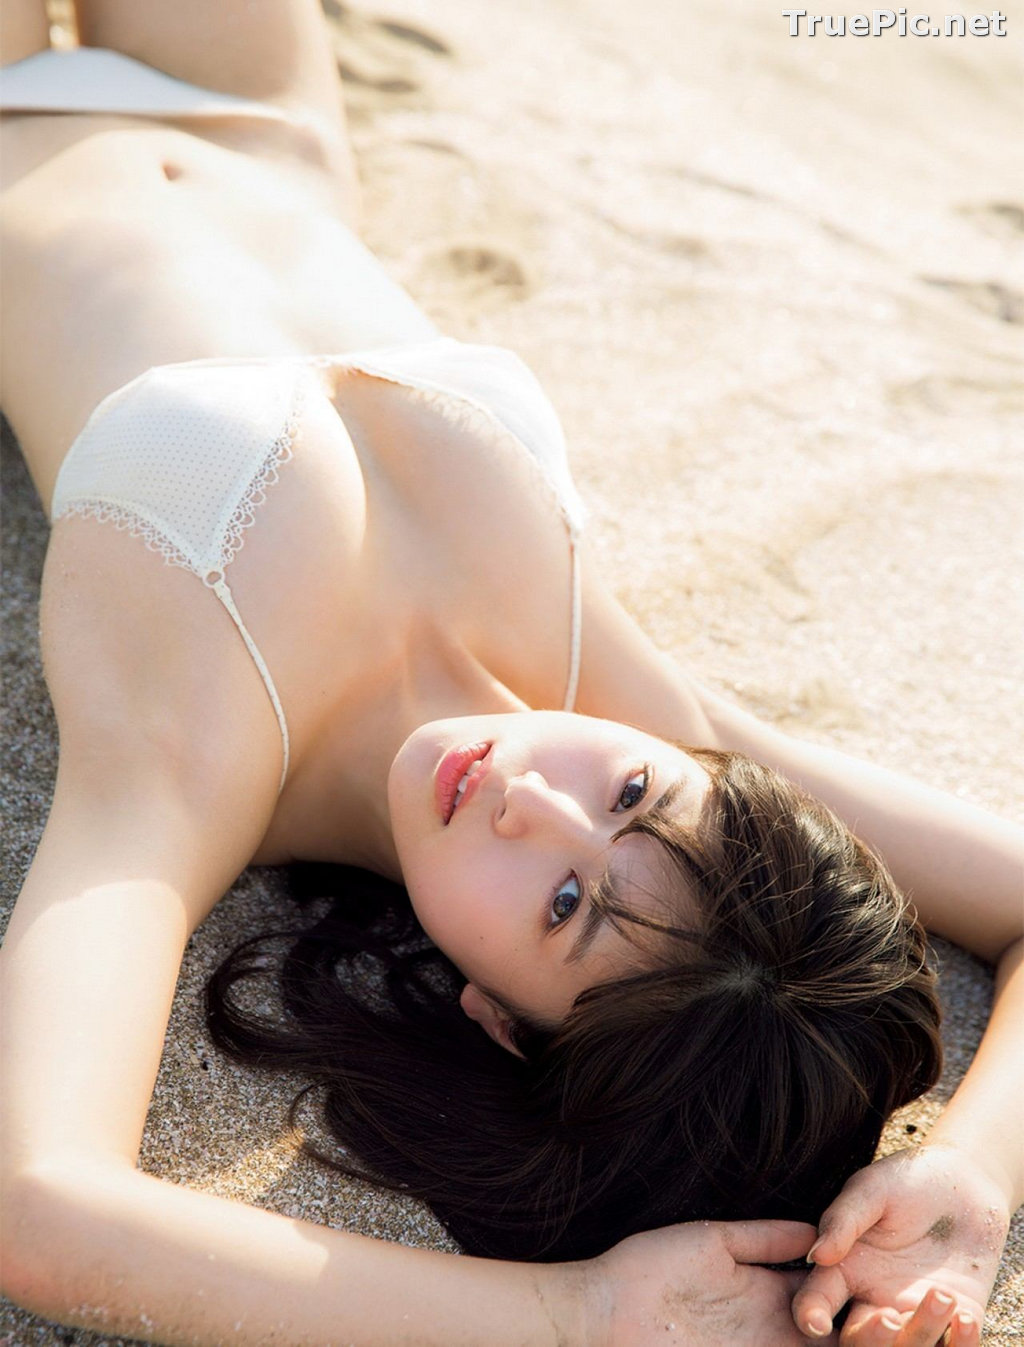 ImageJapanese Gravure Idol and Actress - Kitamuki Miyu (北向珠夕) - Sexy Picture Collection 2020 - TruePic.net - Picture-2